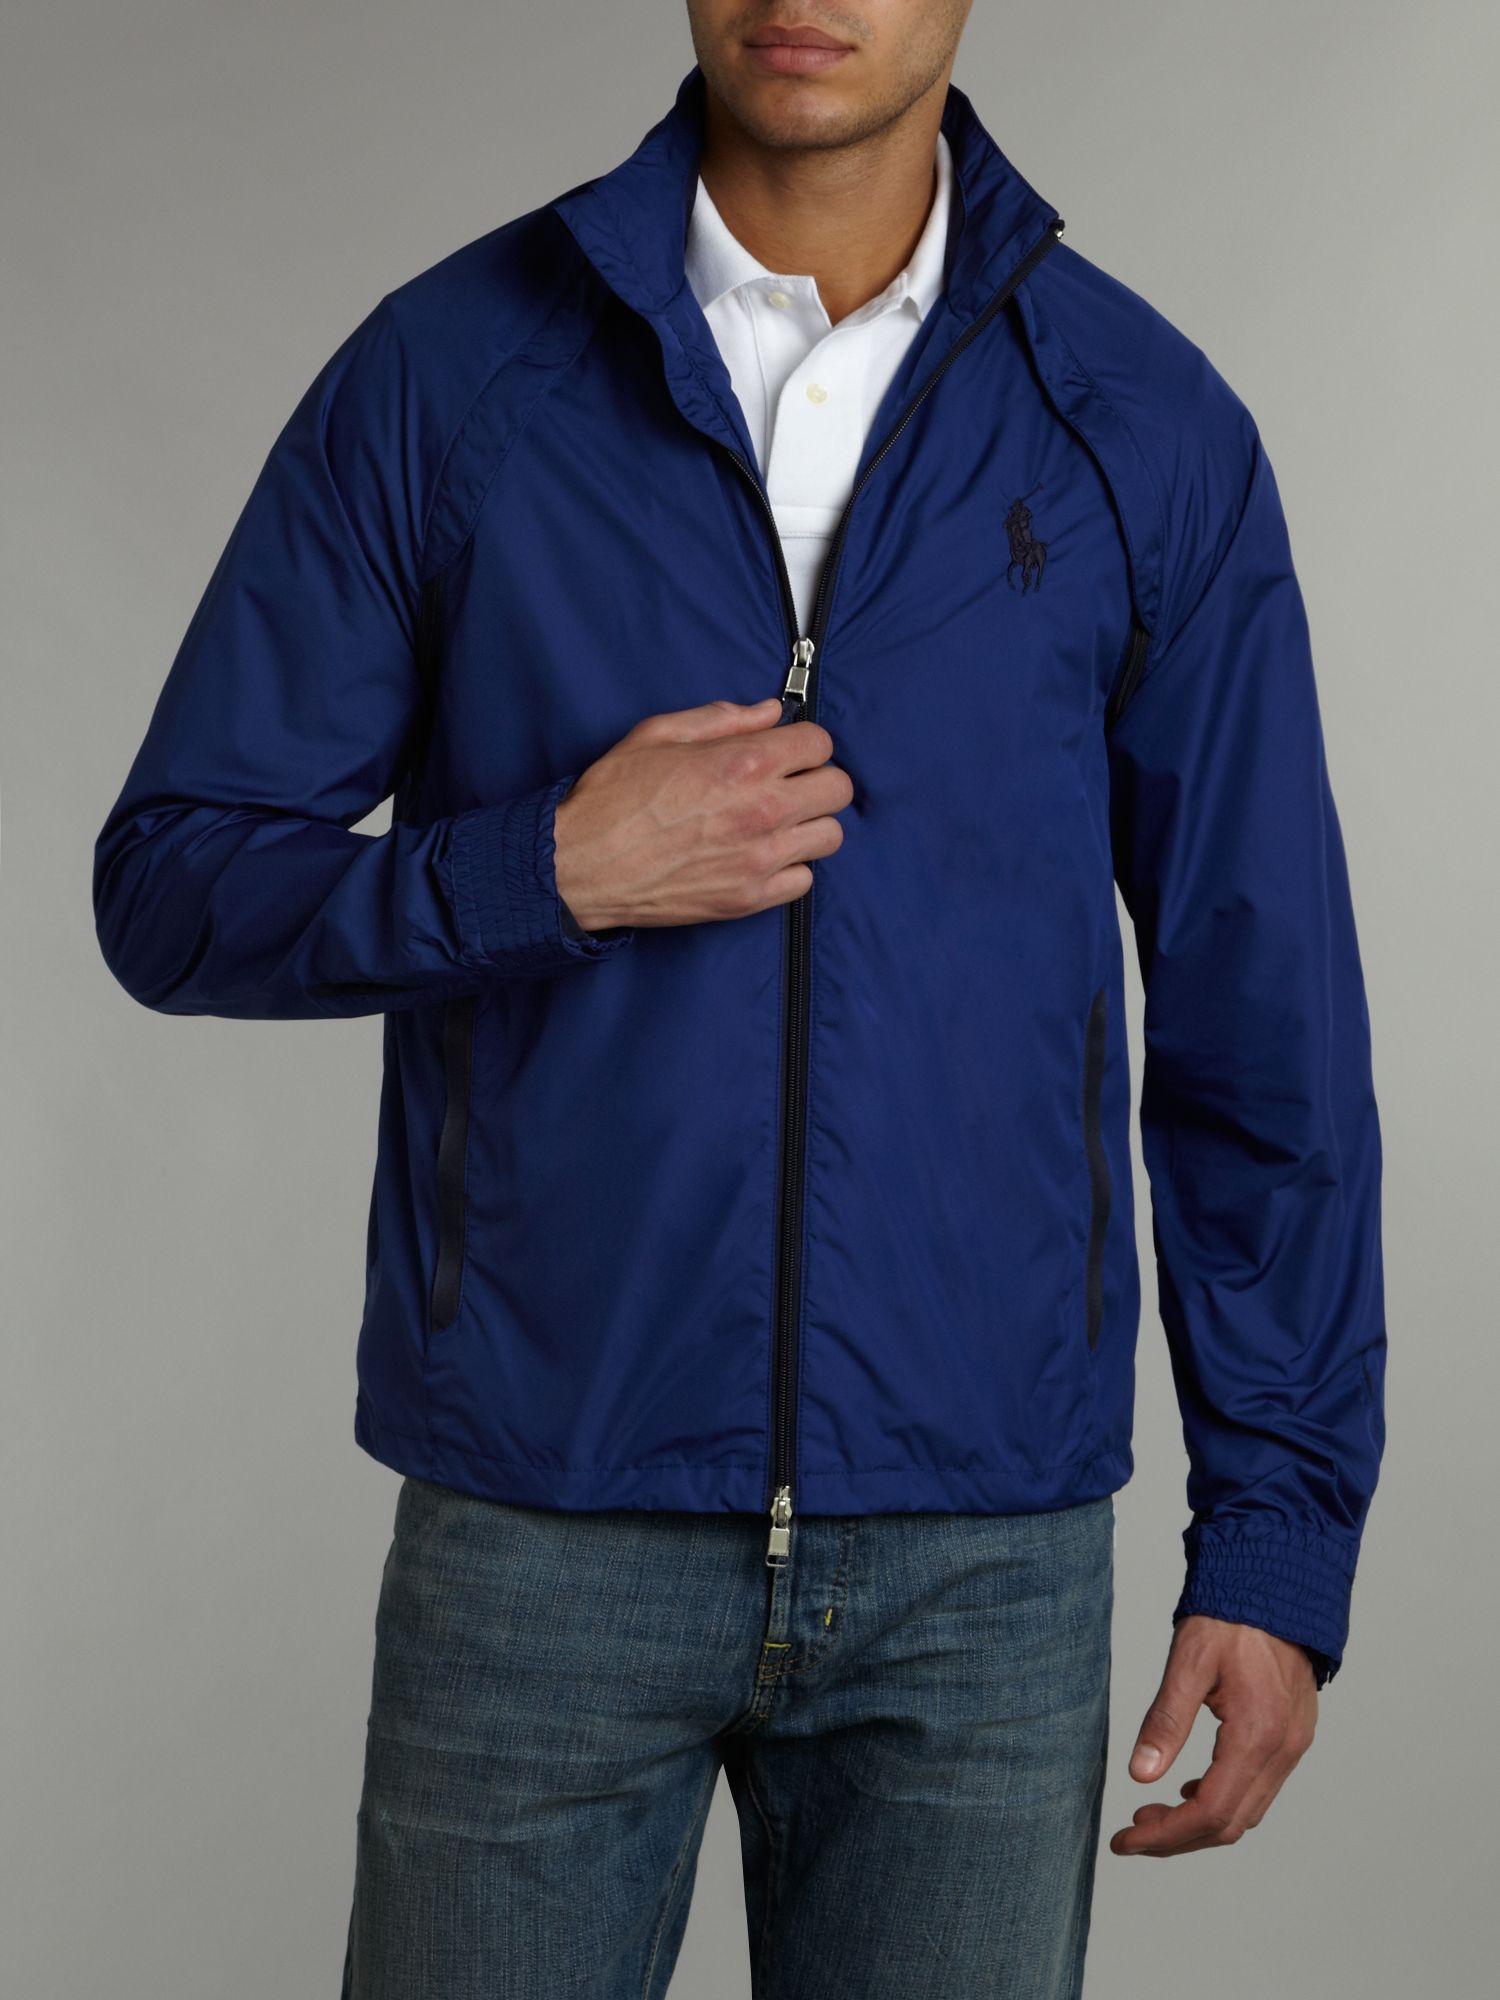 Ralph lauren golf Convertible Golf Windbreaker Jacket in Blue for ...